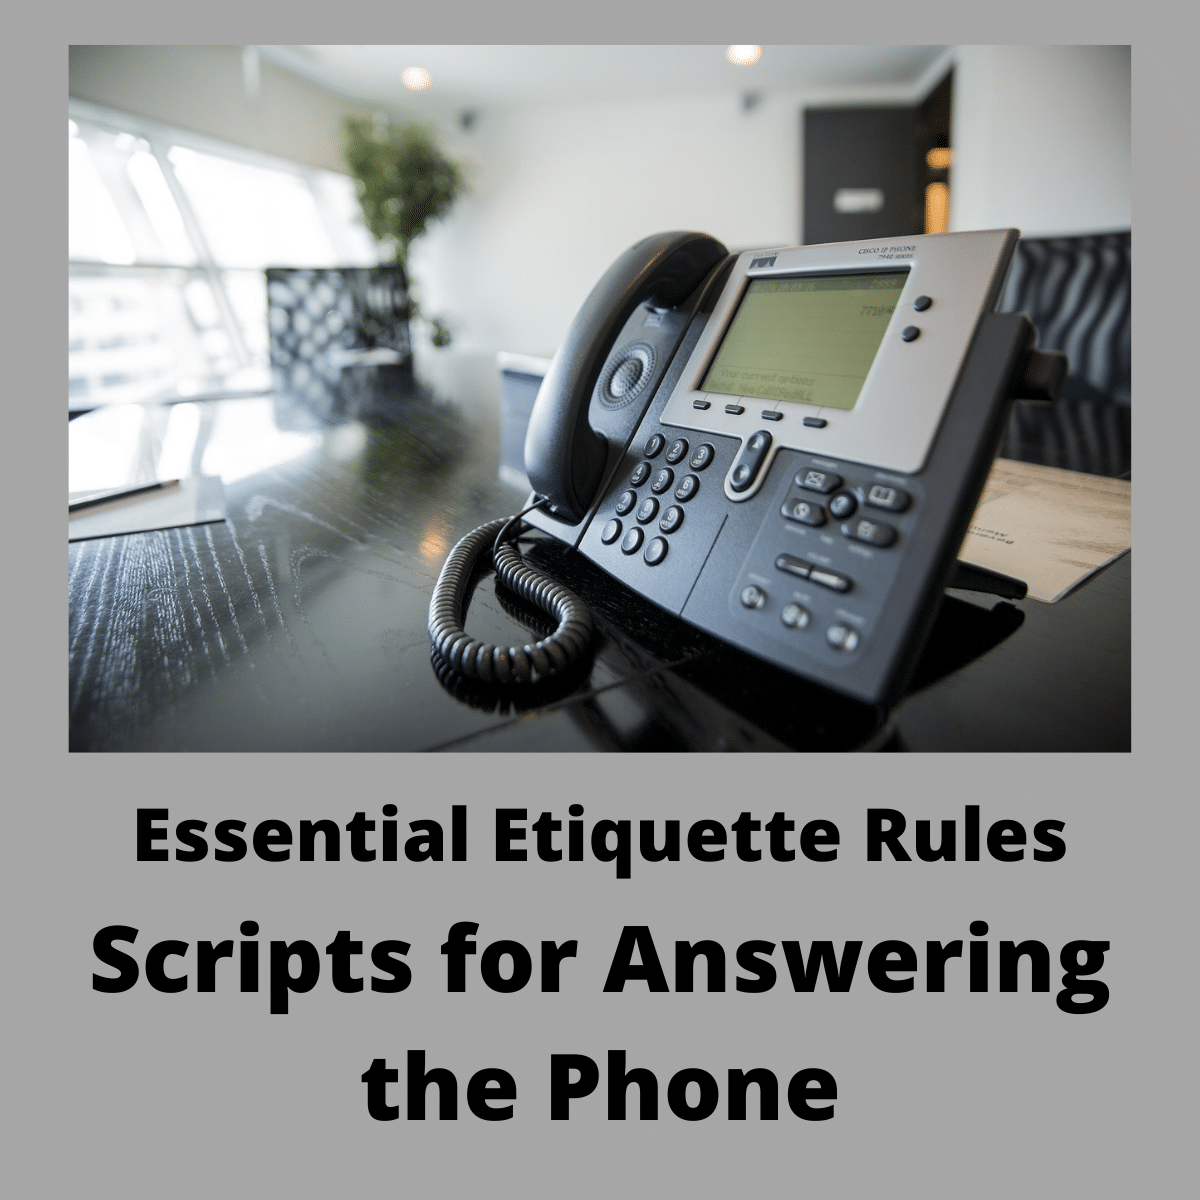 Scripts for Answering the Phone